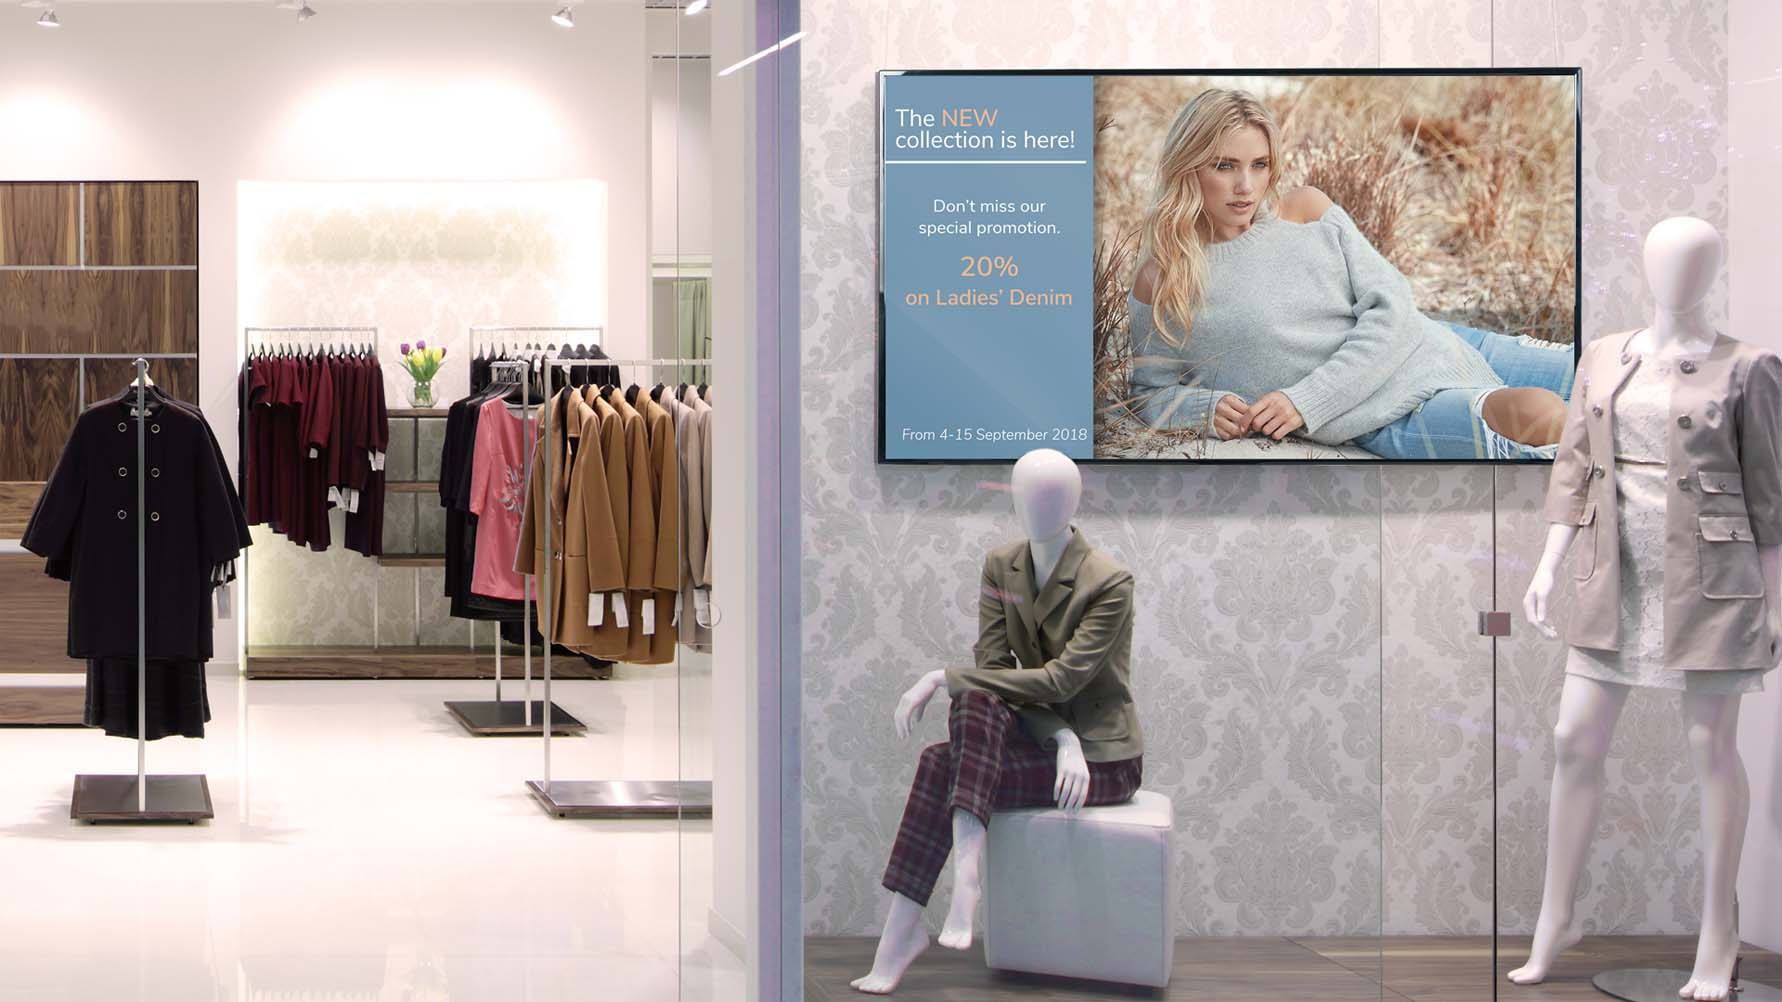 arya digital signage solution in a retail shop